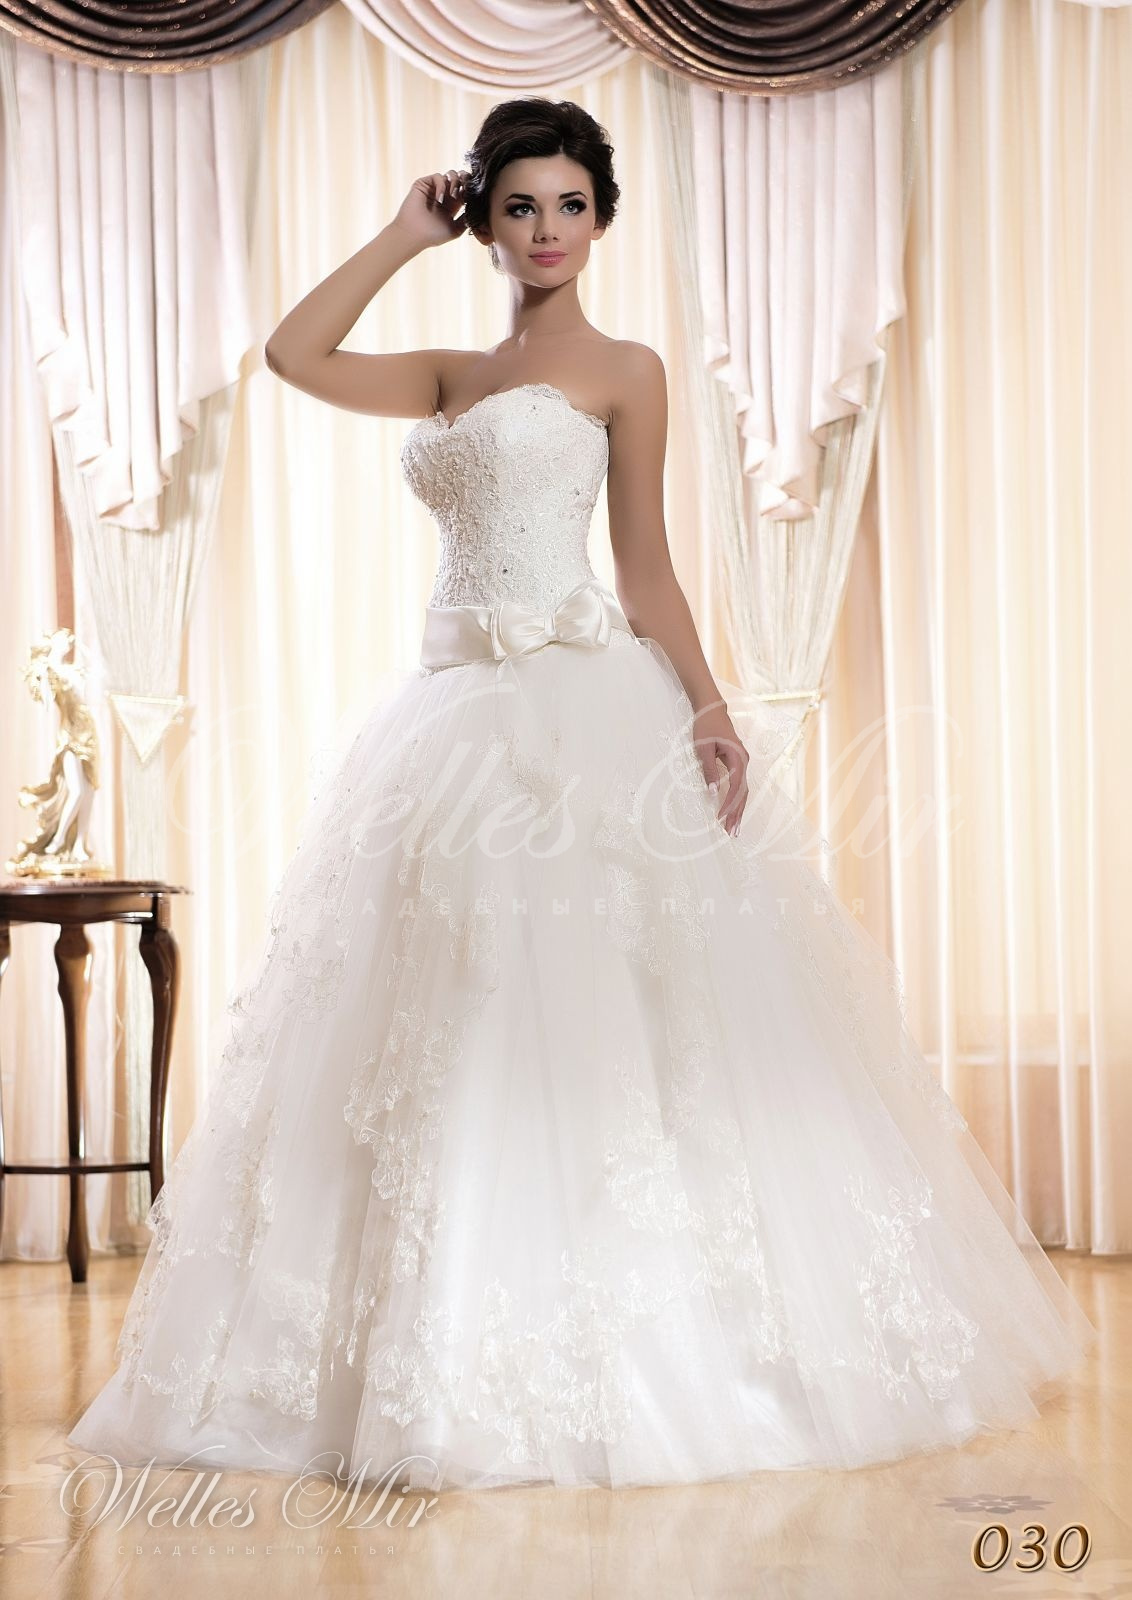 Wedding dresses 030